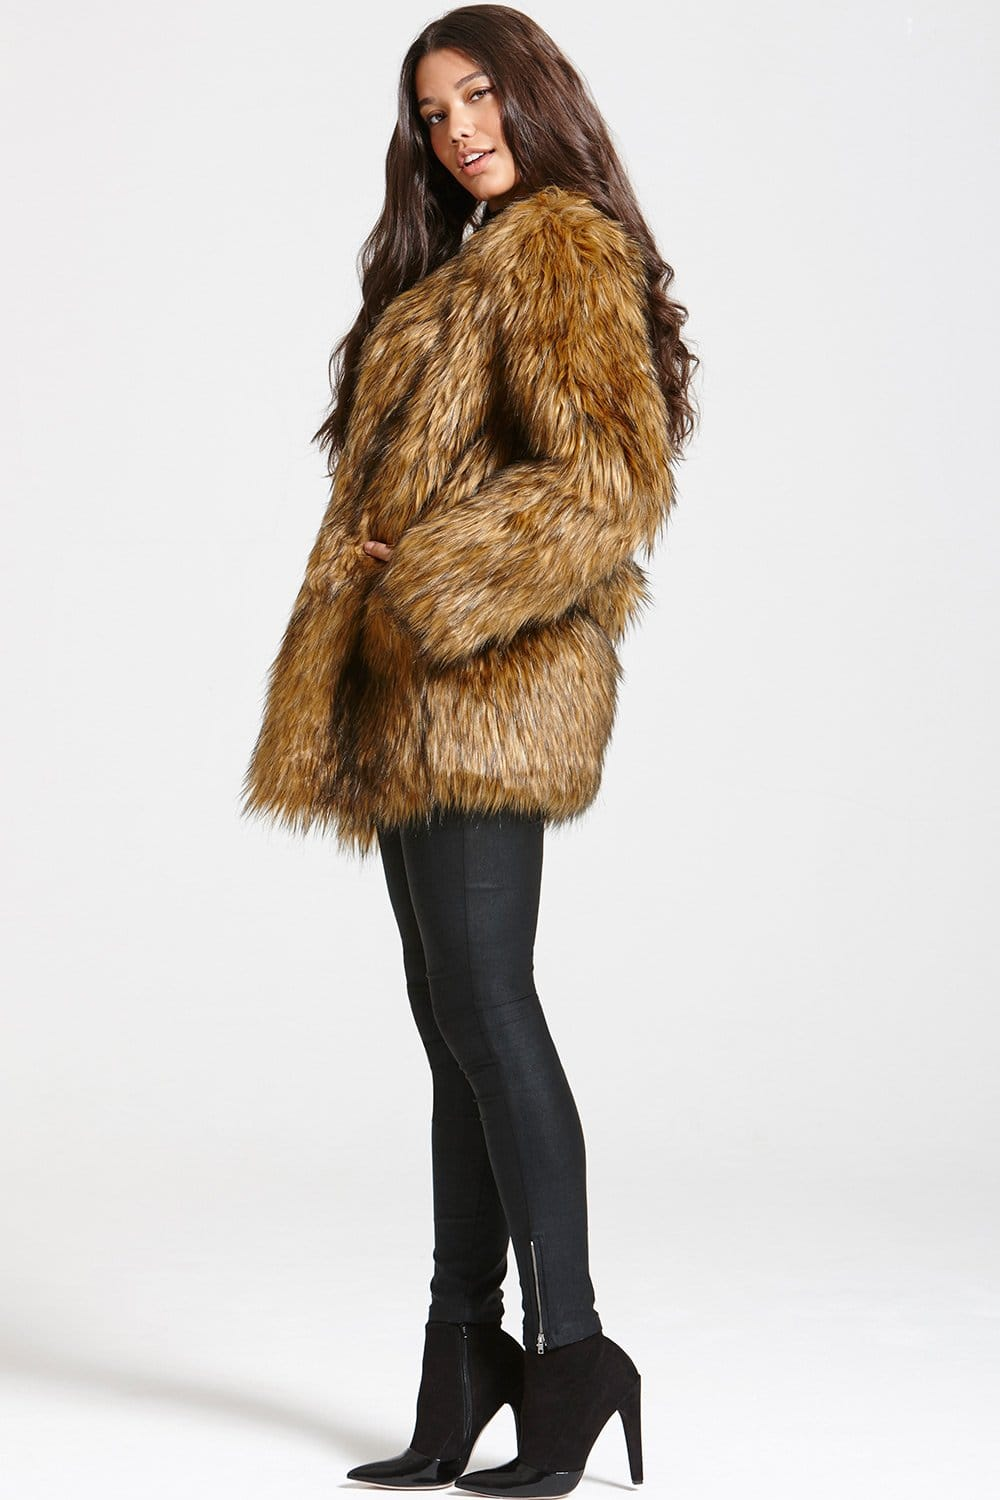 Little Mistress Brown Faux Fur Jacket - Little Mistress from ...